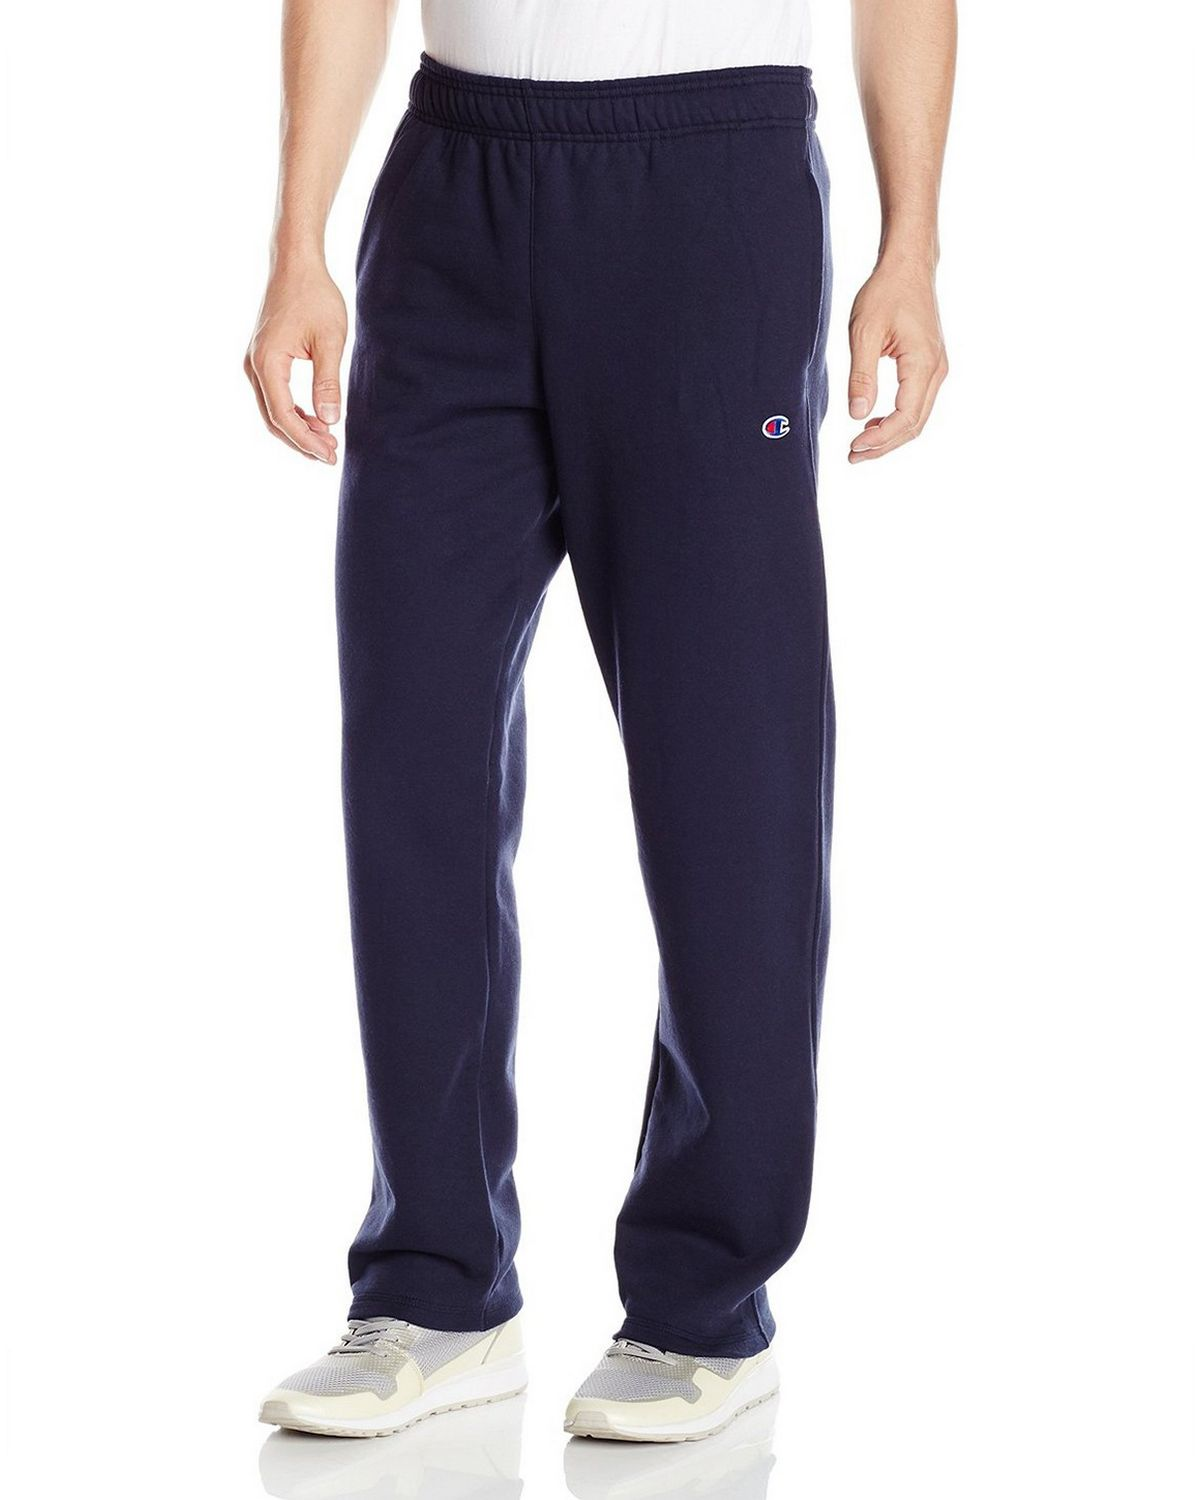 Champion P0893 Mens Fleece Open Bottom Pants - Navy - XL P0893